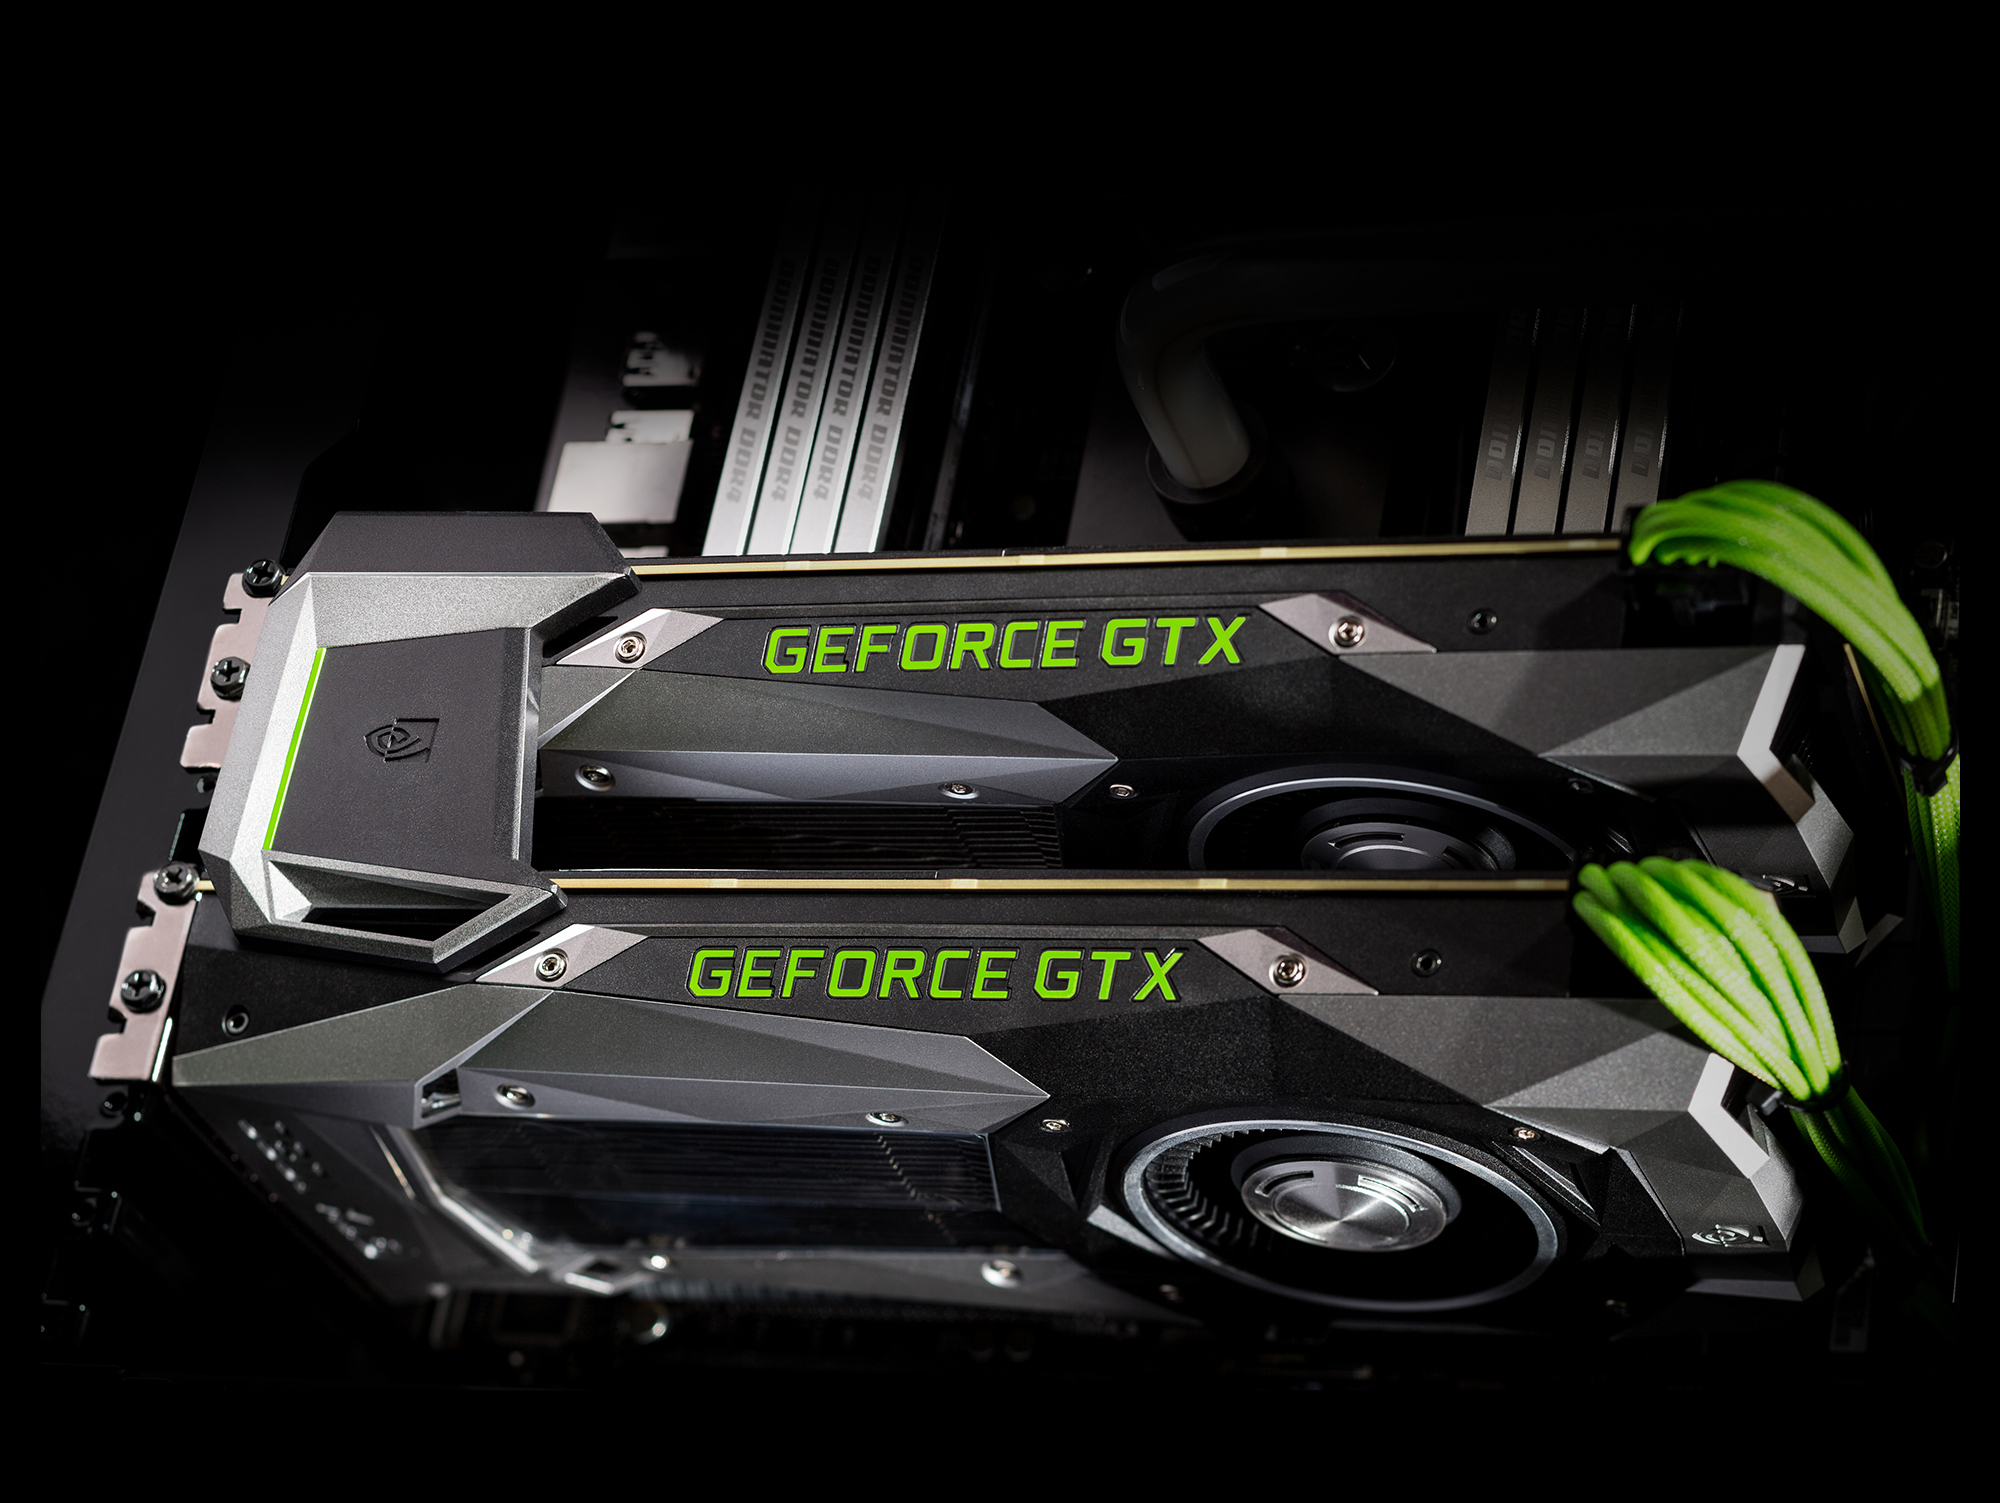 NVIDIA GeForce GTX 1080 Runs Doom With Vulkan API – Achieves Up To 200 FPS  With Ultra Settings at 1080P